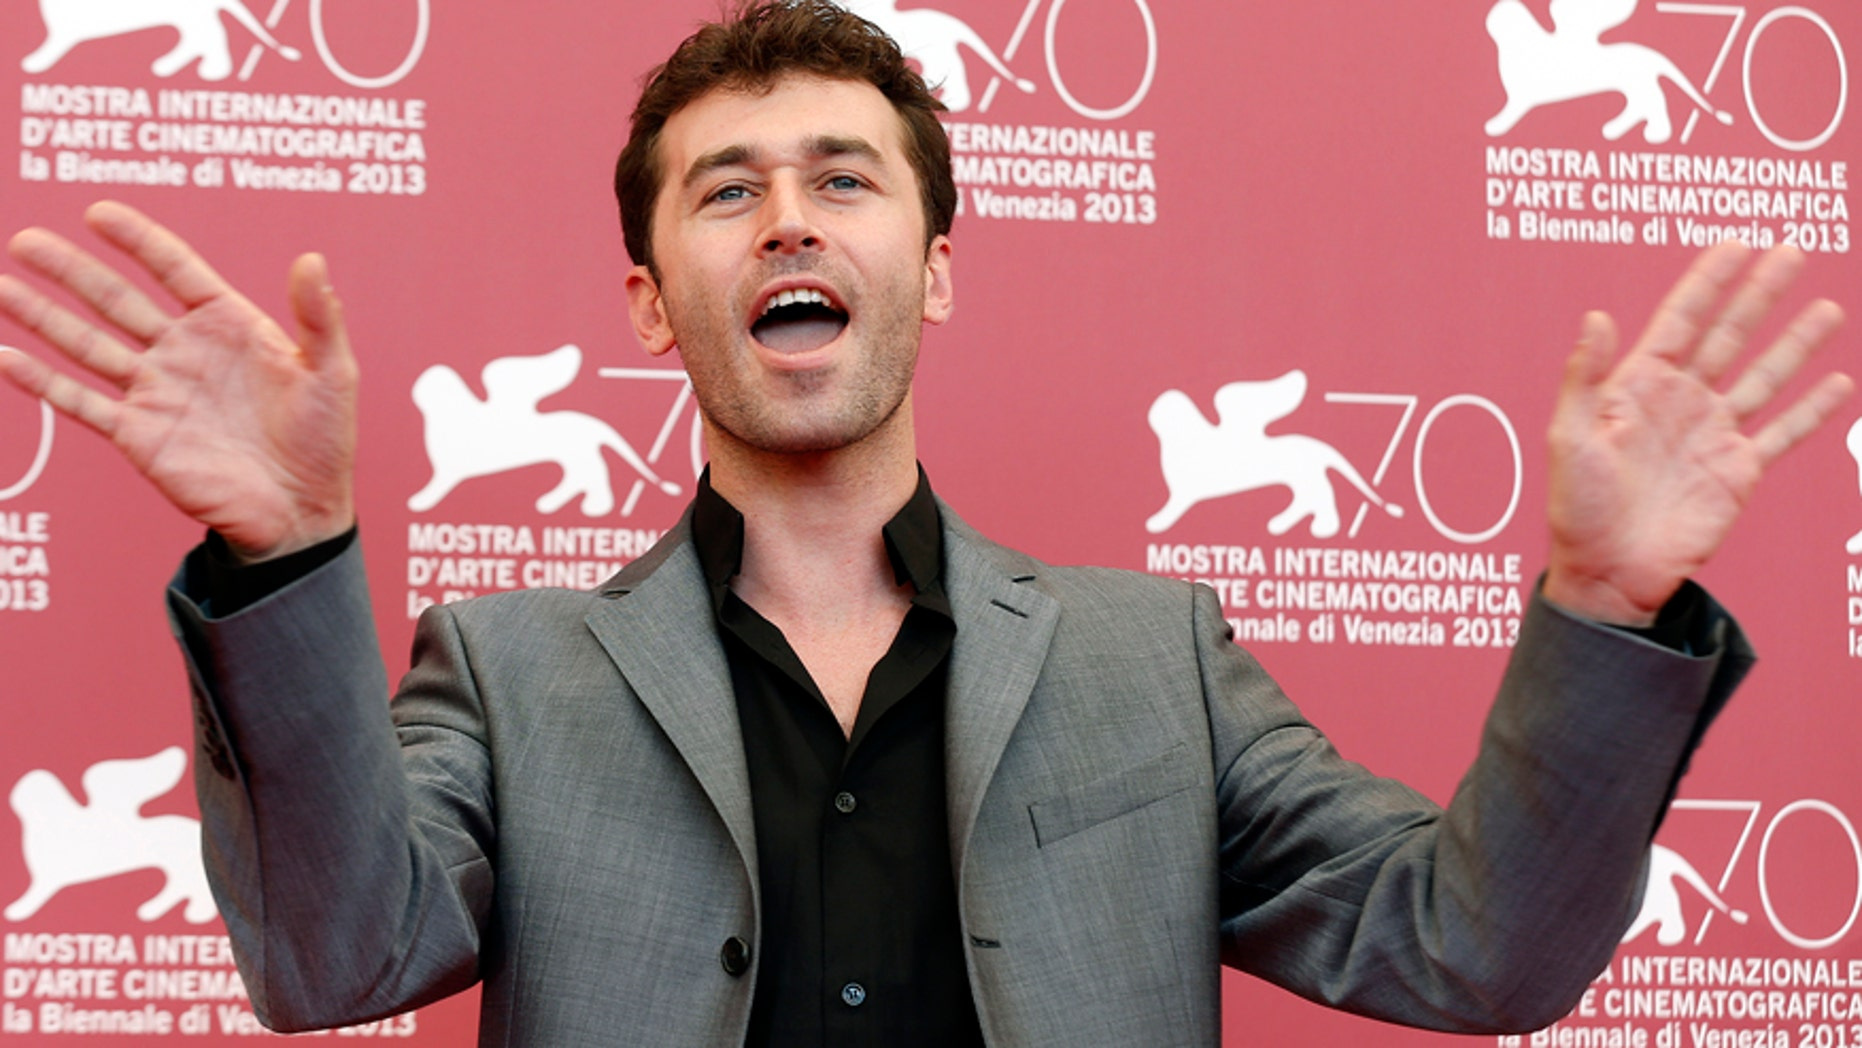 """Actor James Deen poses during a photocall during the 70th Venice Film Festival in Venice August 30, 2013. Actors Deen and Tenille Houston are in Paul Schrader's movie """"The Canyons"""", which debuts at the festival.  REUTERS/Alessandro Bianchi (ITALY - Tags: ENTERTAINMENT SOCIETY) - RTX131HS"""